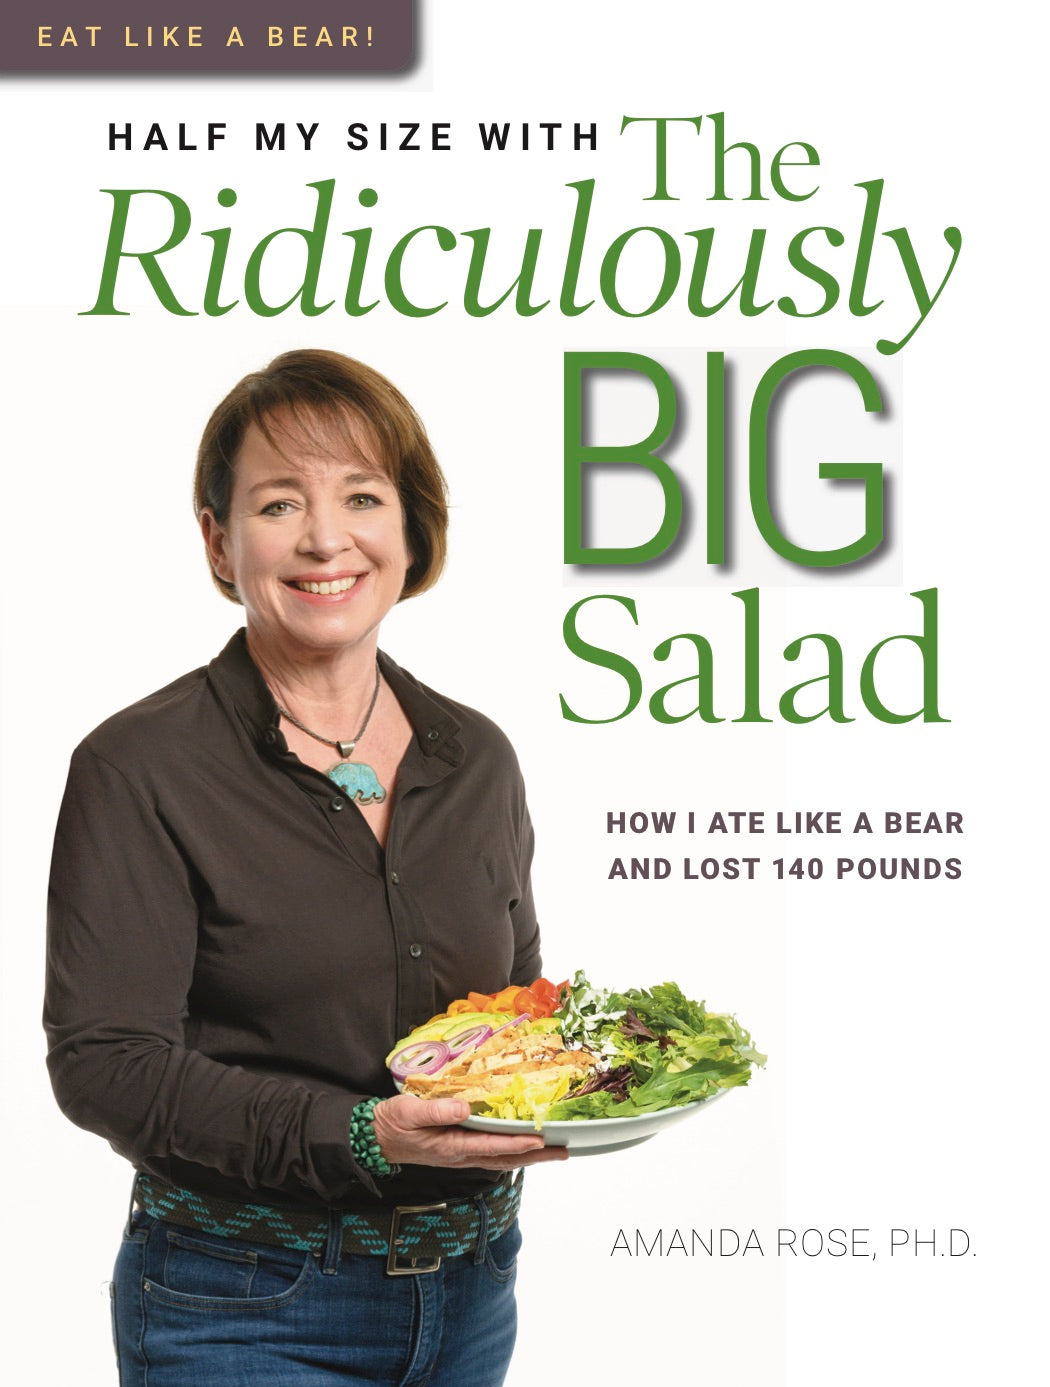 (BACK ORDER, shipping Feb 2021) Half My Size with The Ridiculously Big Salad Physical Hardcover Book (U.S. Orders Only)